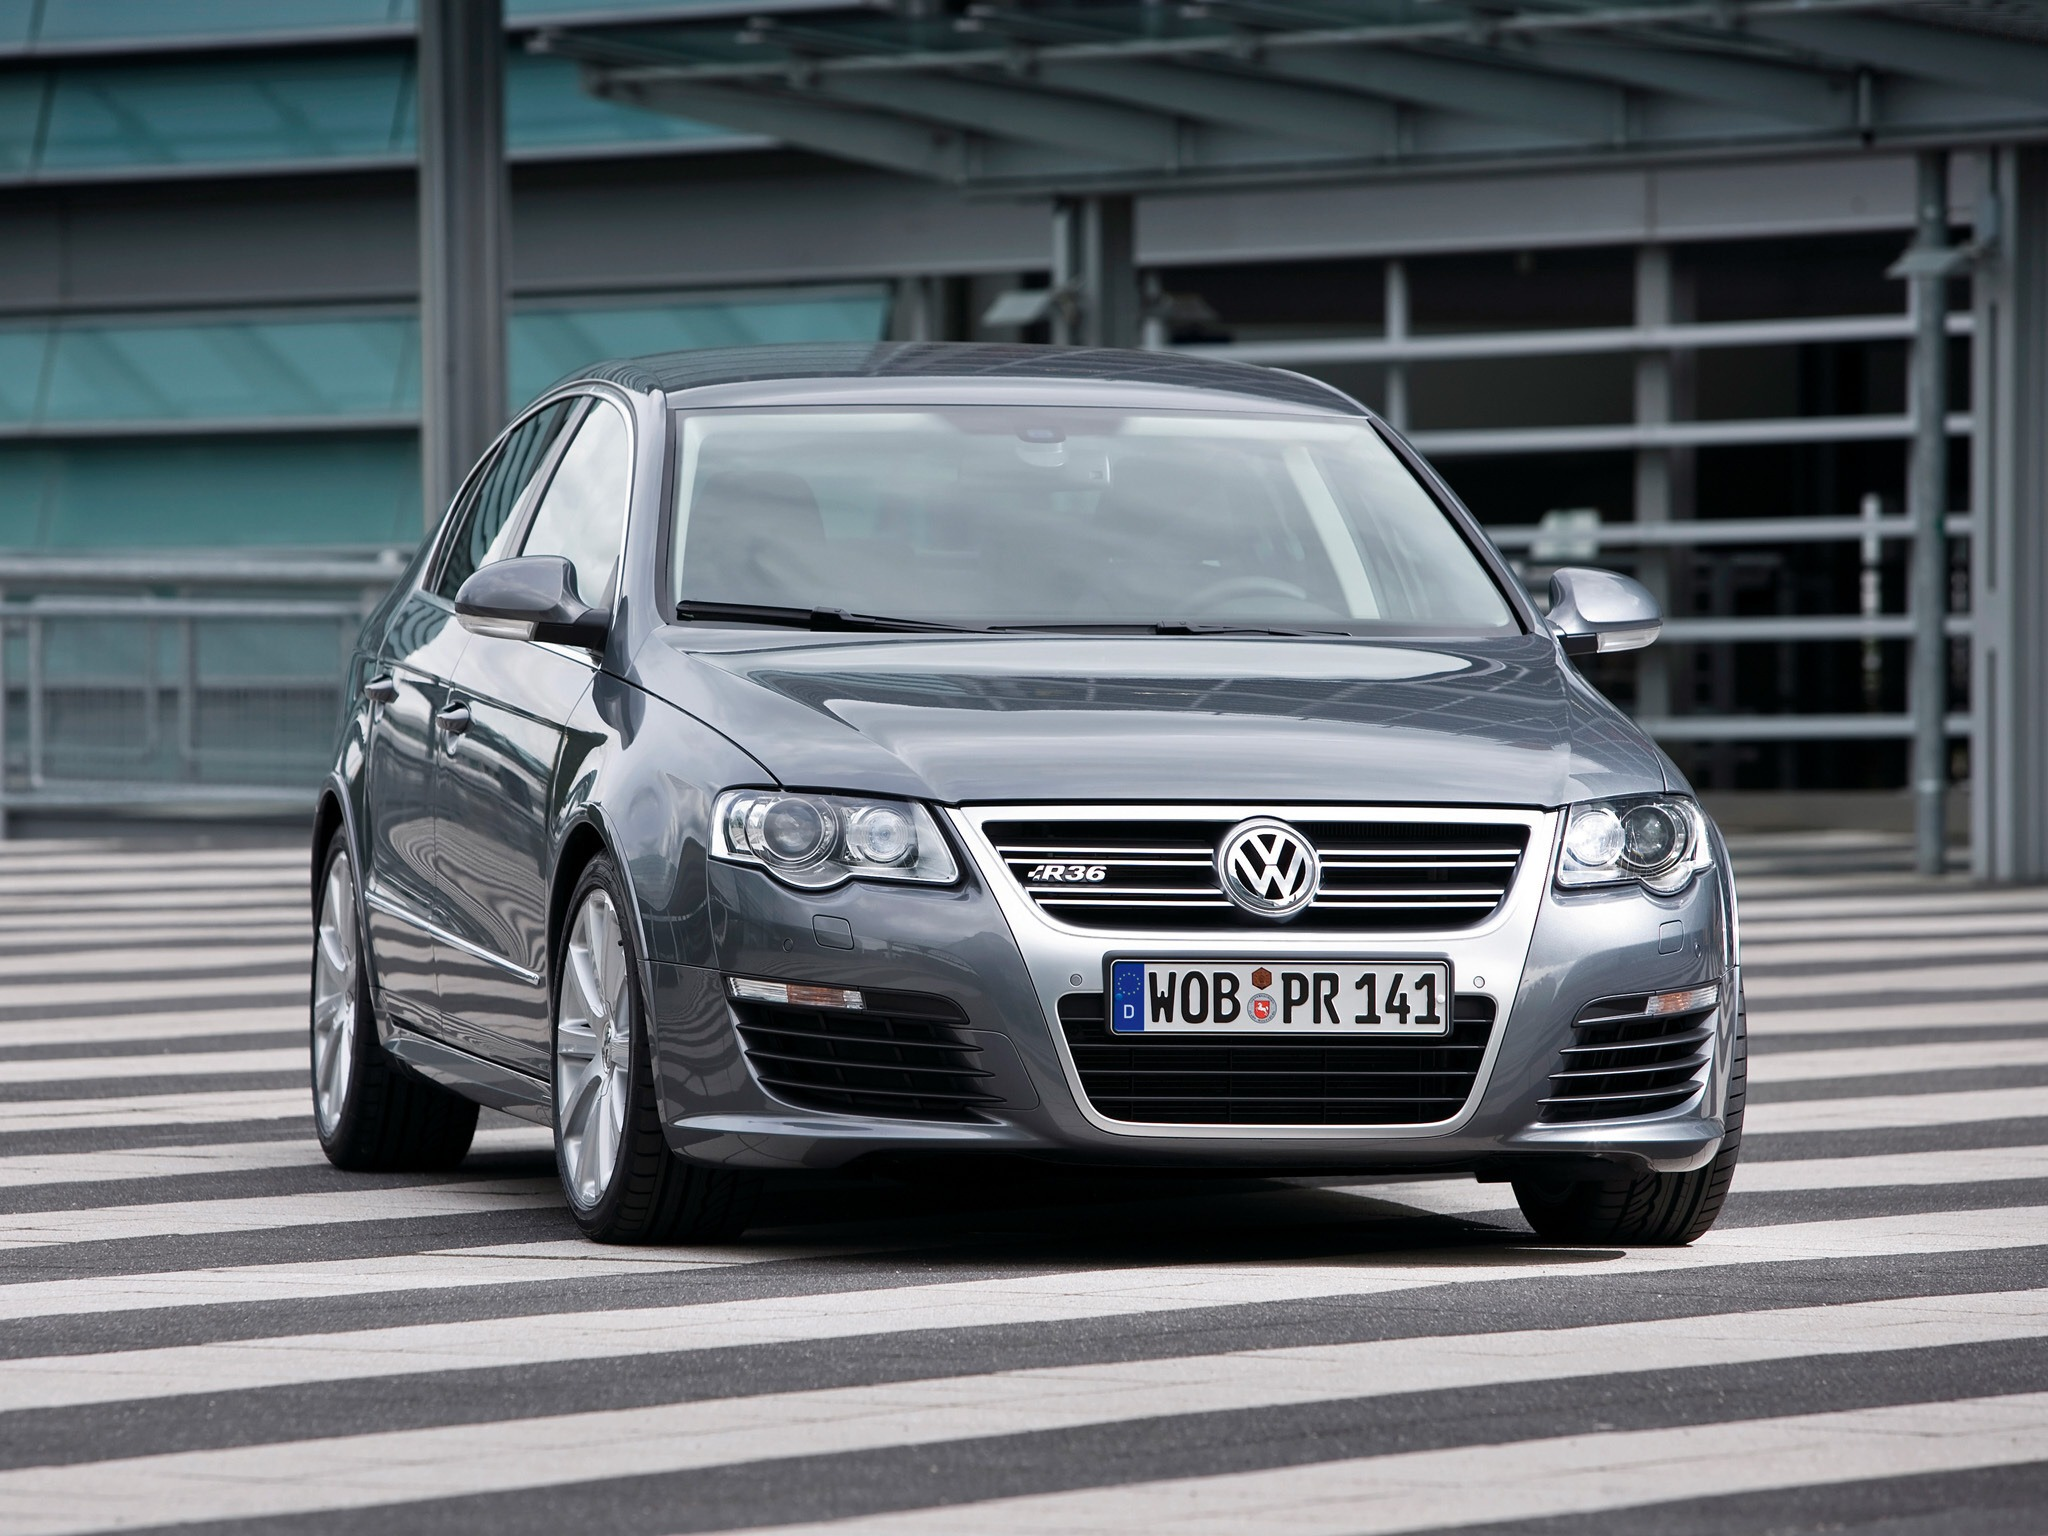 Cool Review About 2010 Passat with Fabulous Pictures